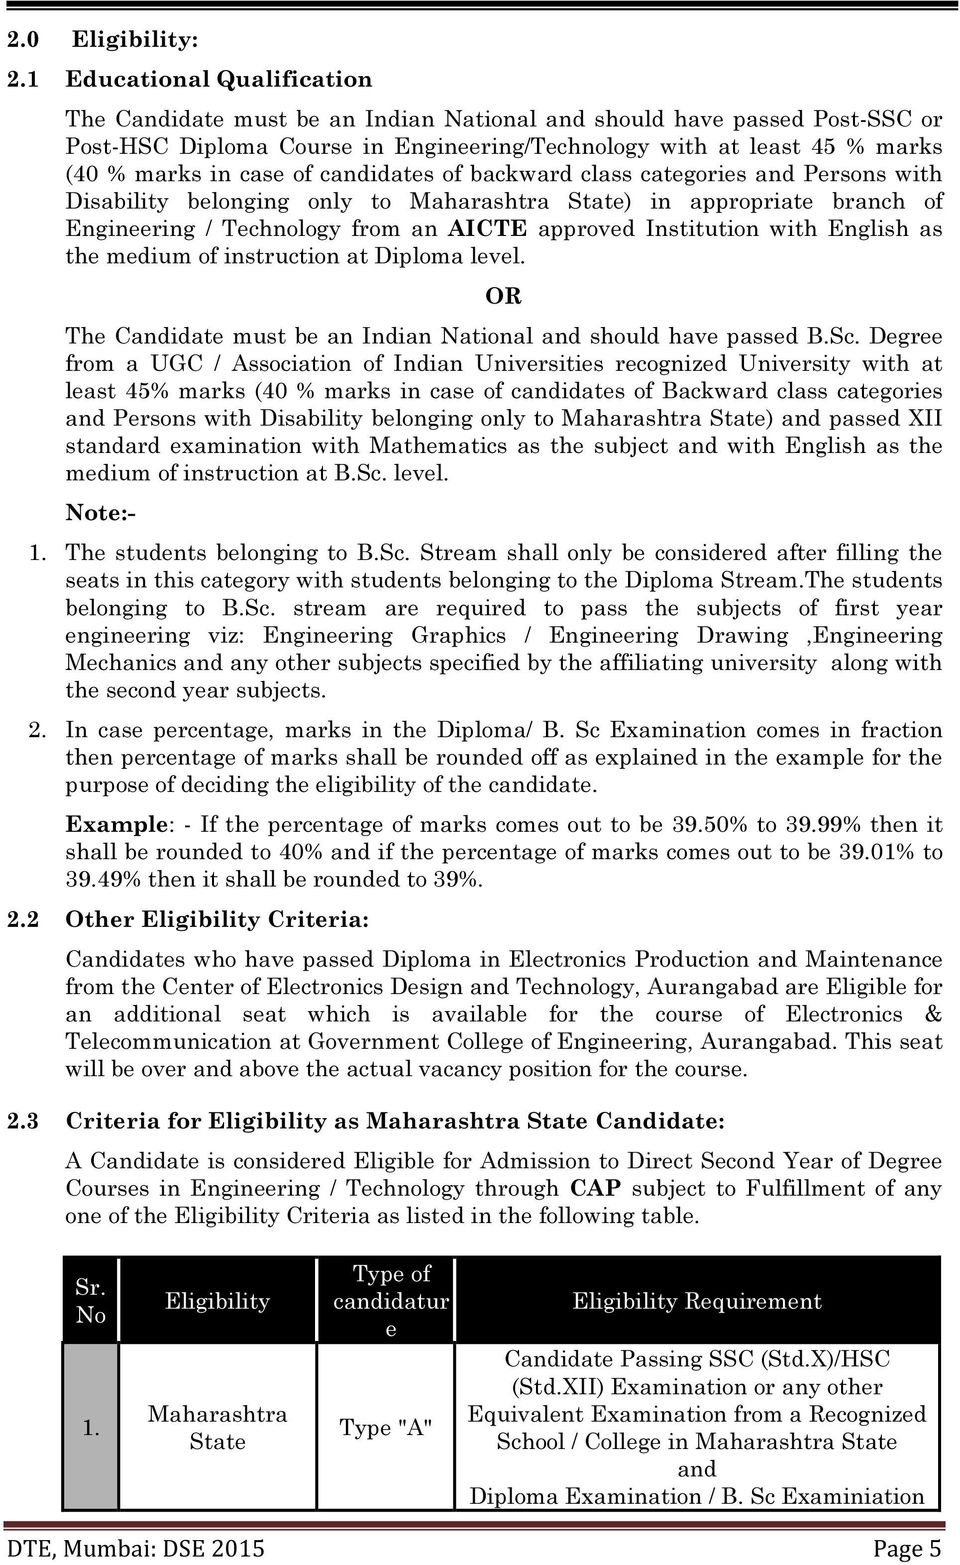 of candidates of backward class categories and Persons with Disability belonging only to Maharashtra State) in appropriate branch of Engineering / Technology from an AICTE approved Institution with